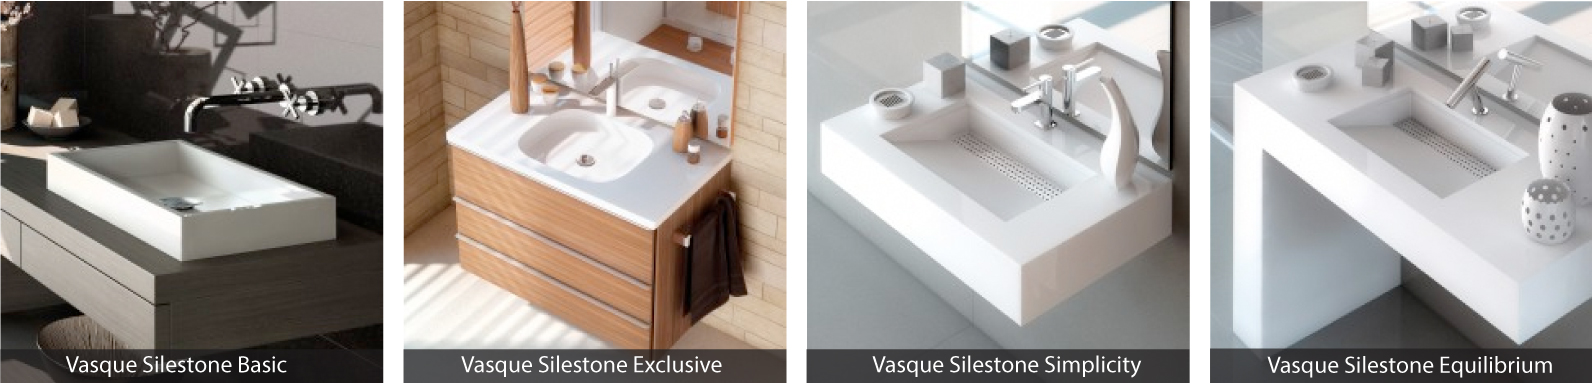 Vasques Silestone Basic, Exclusive, Simplicity, Equilibrium